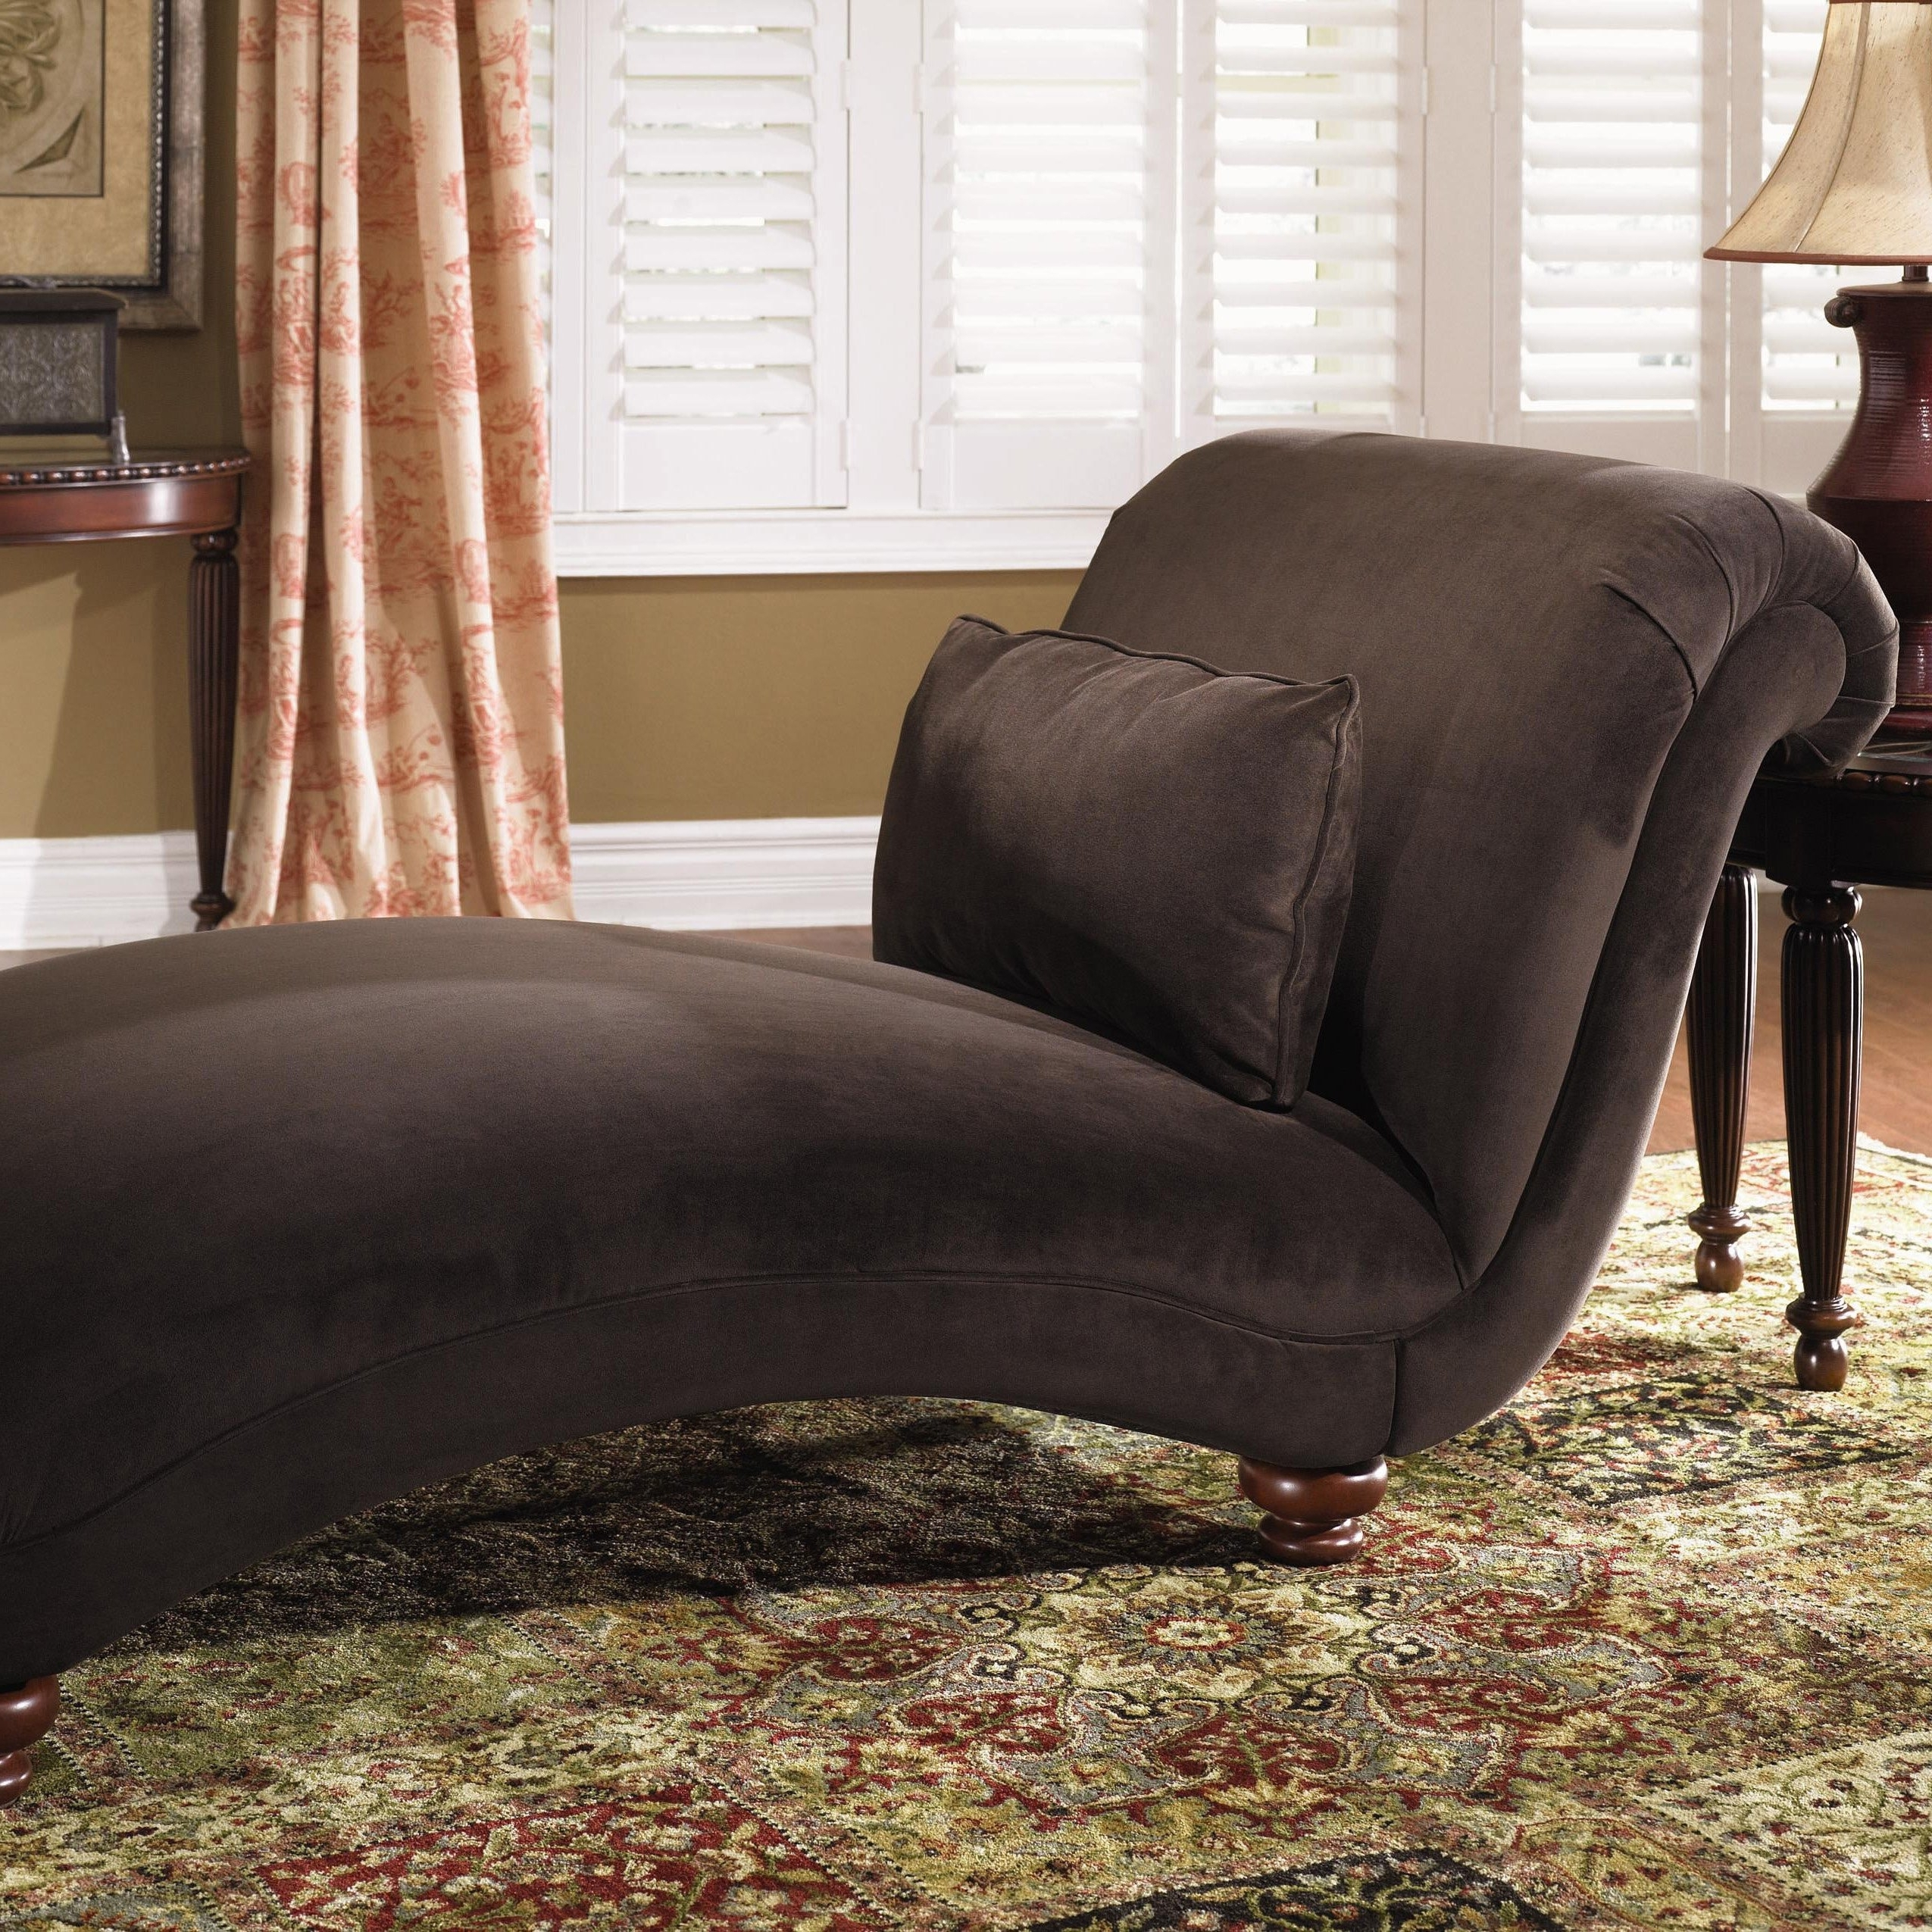 Chaise Lounges For Bedrooms For Well Known Bedroom Ideas : Amazing Cool Tufted Chaise Lounge Chair With (View 4 of 15)